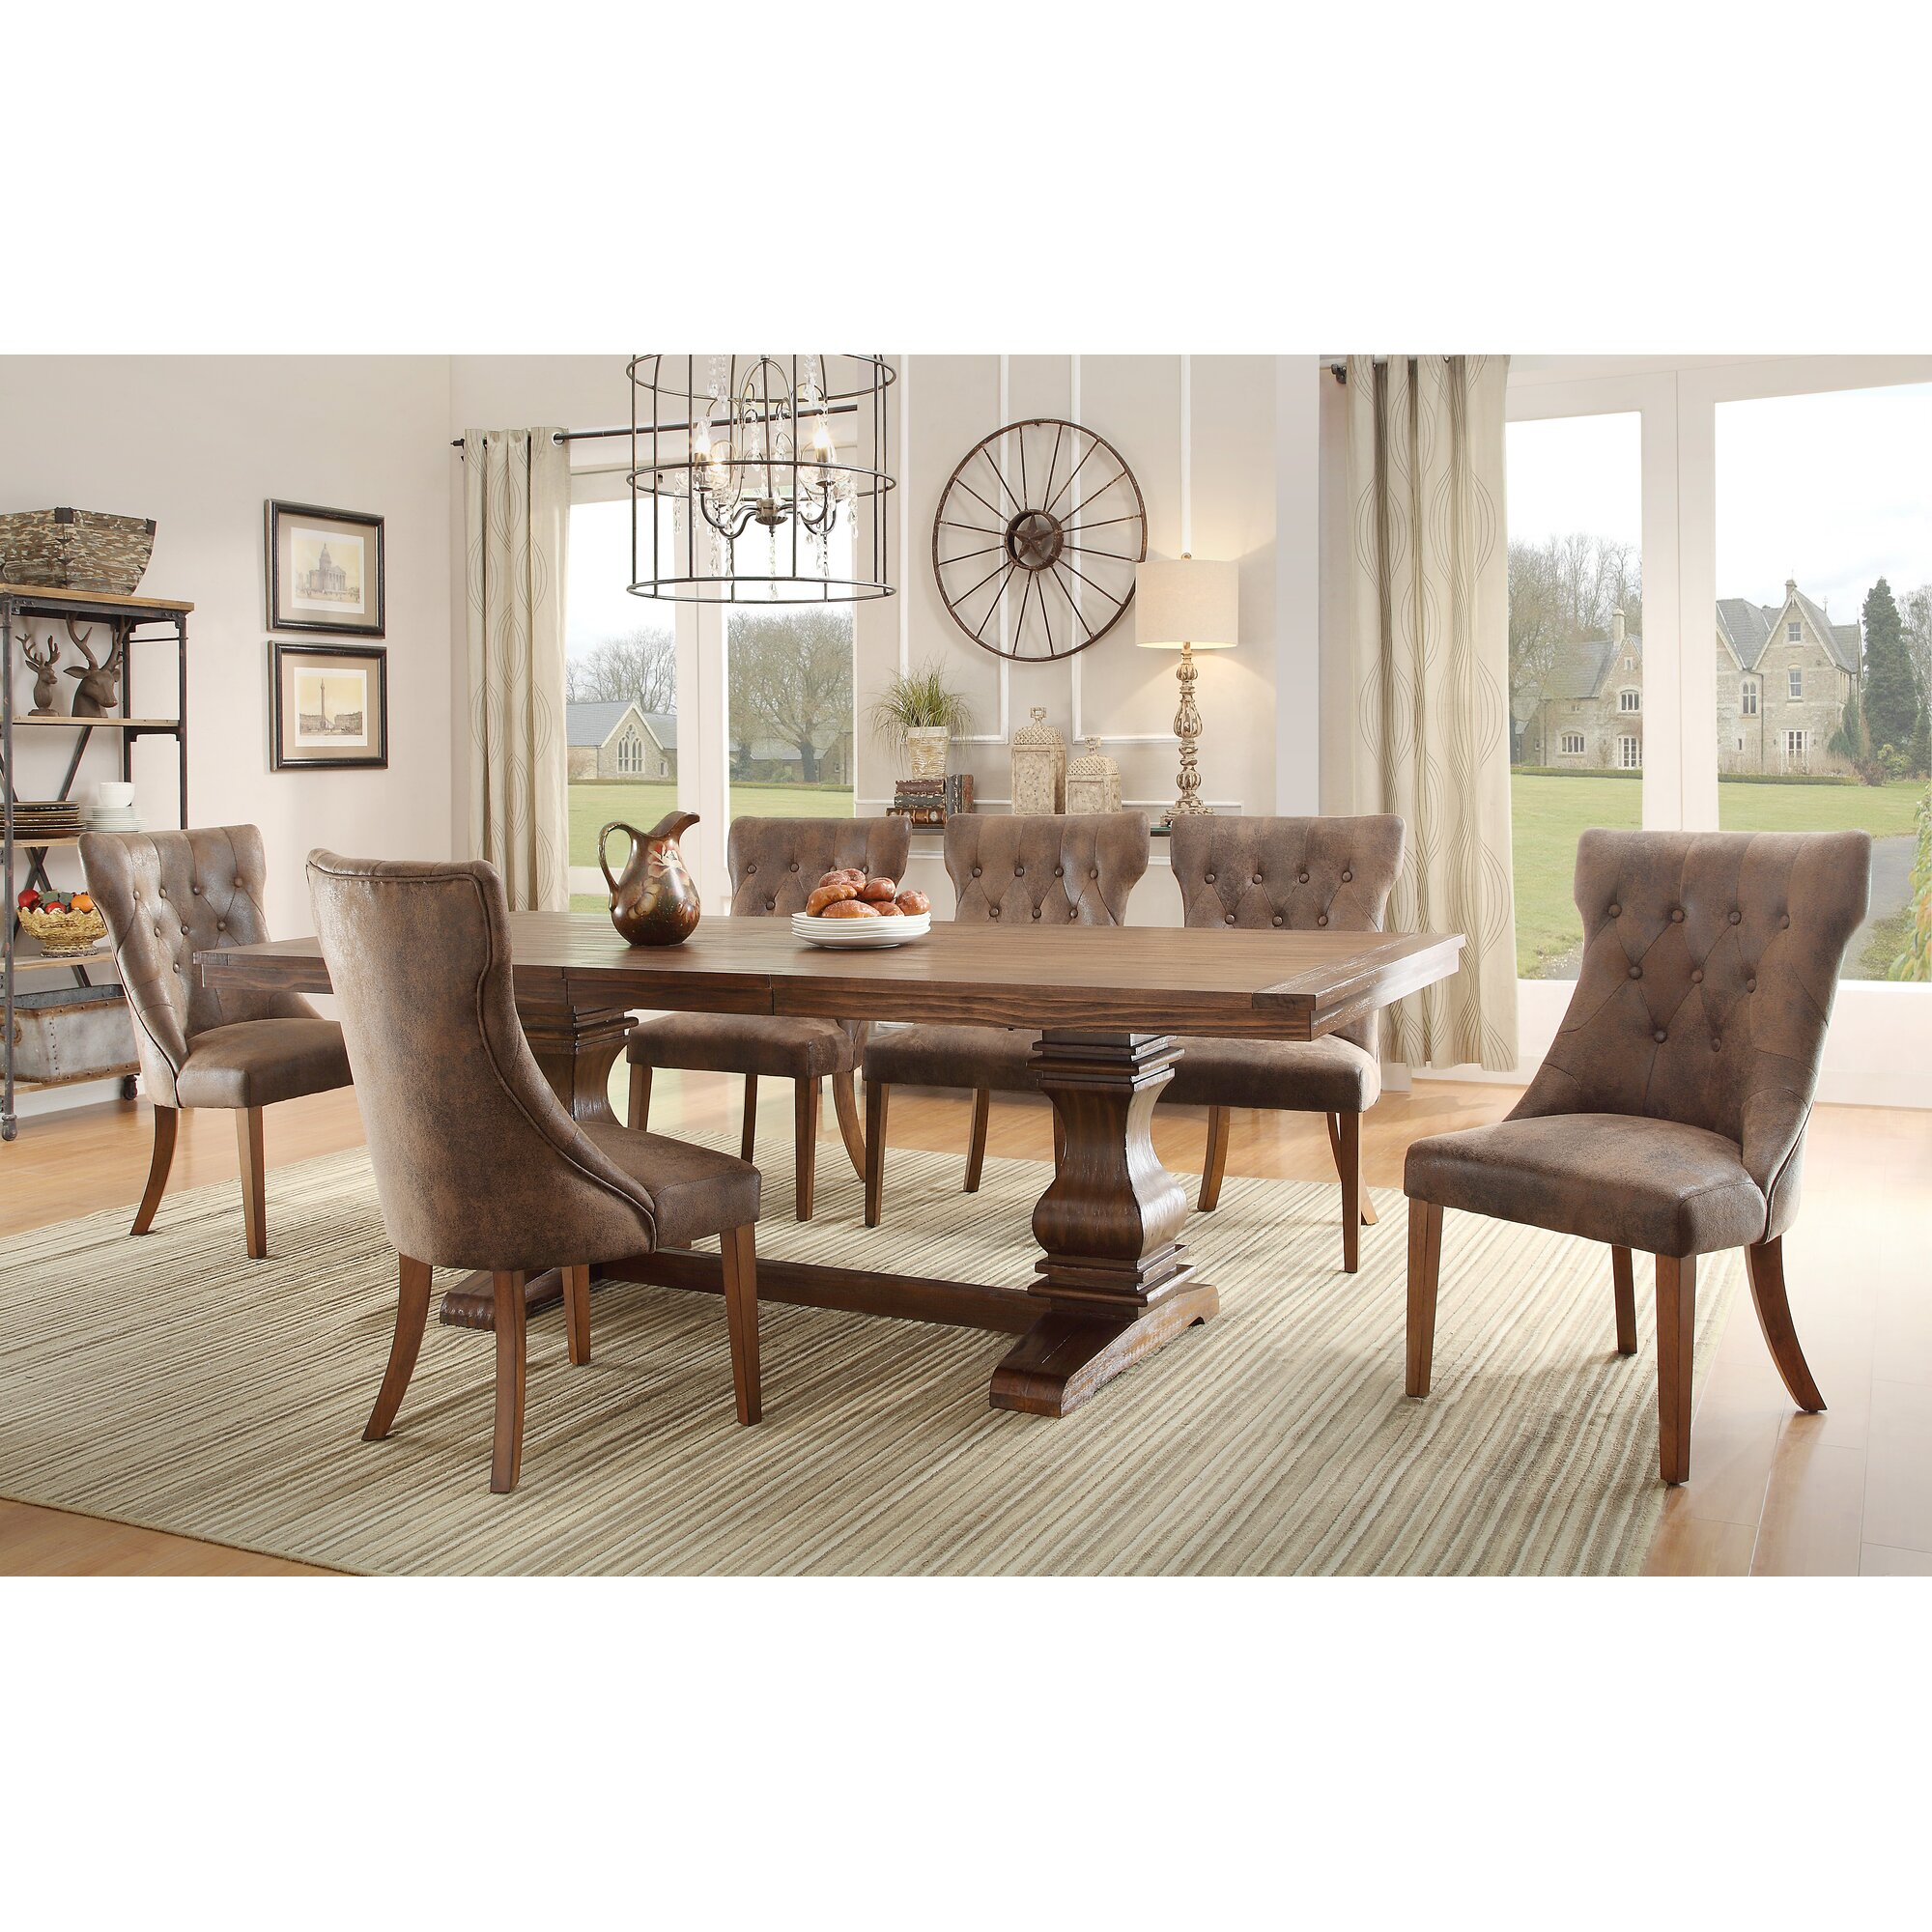 August Grove Elton Extendable Dining Table & Reviews | Wayfair